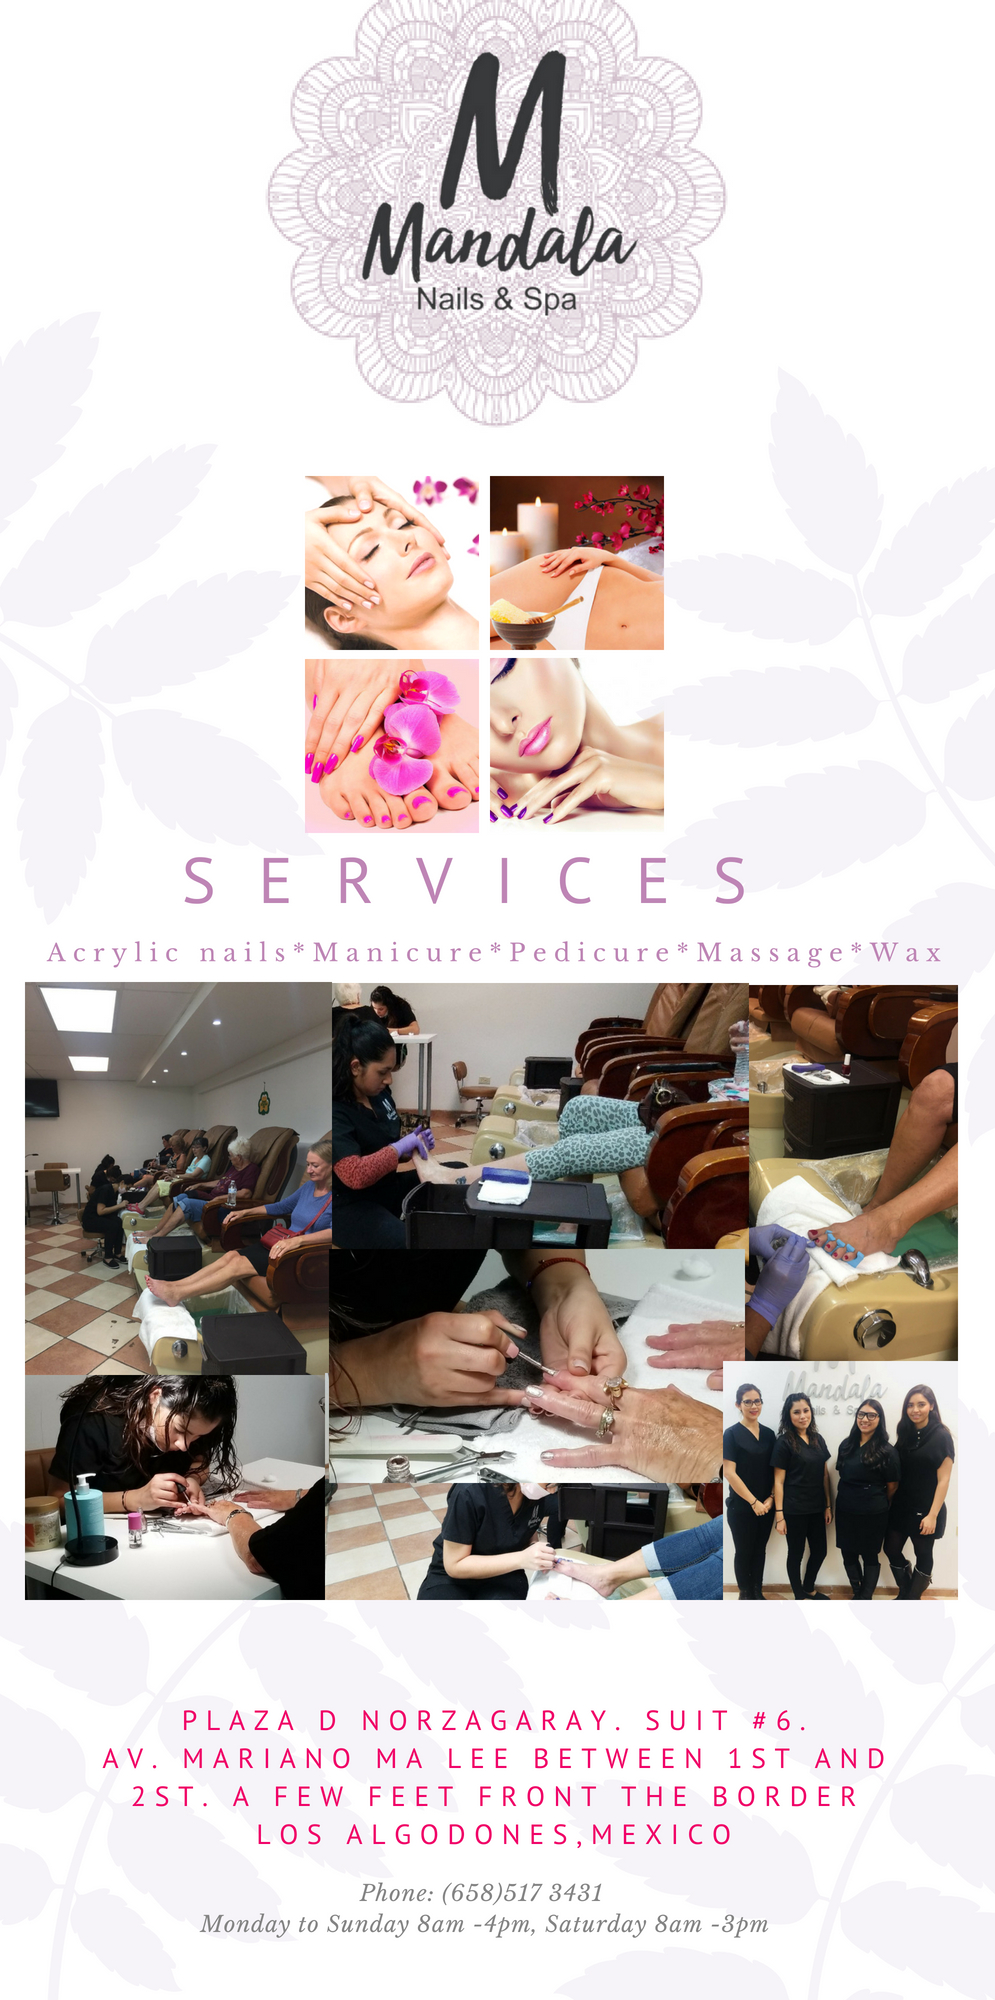 Mandala Nails & Spa in Algodones  in Algodones  Pedicure, Manicure, Nails, Massage, Wax.  mandala nails spa pedicure manicure nails massage wax mandala nails&spa